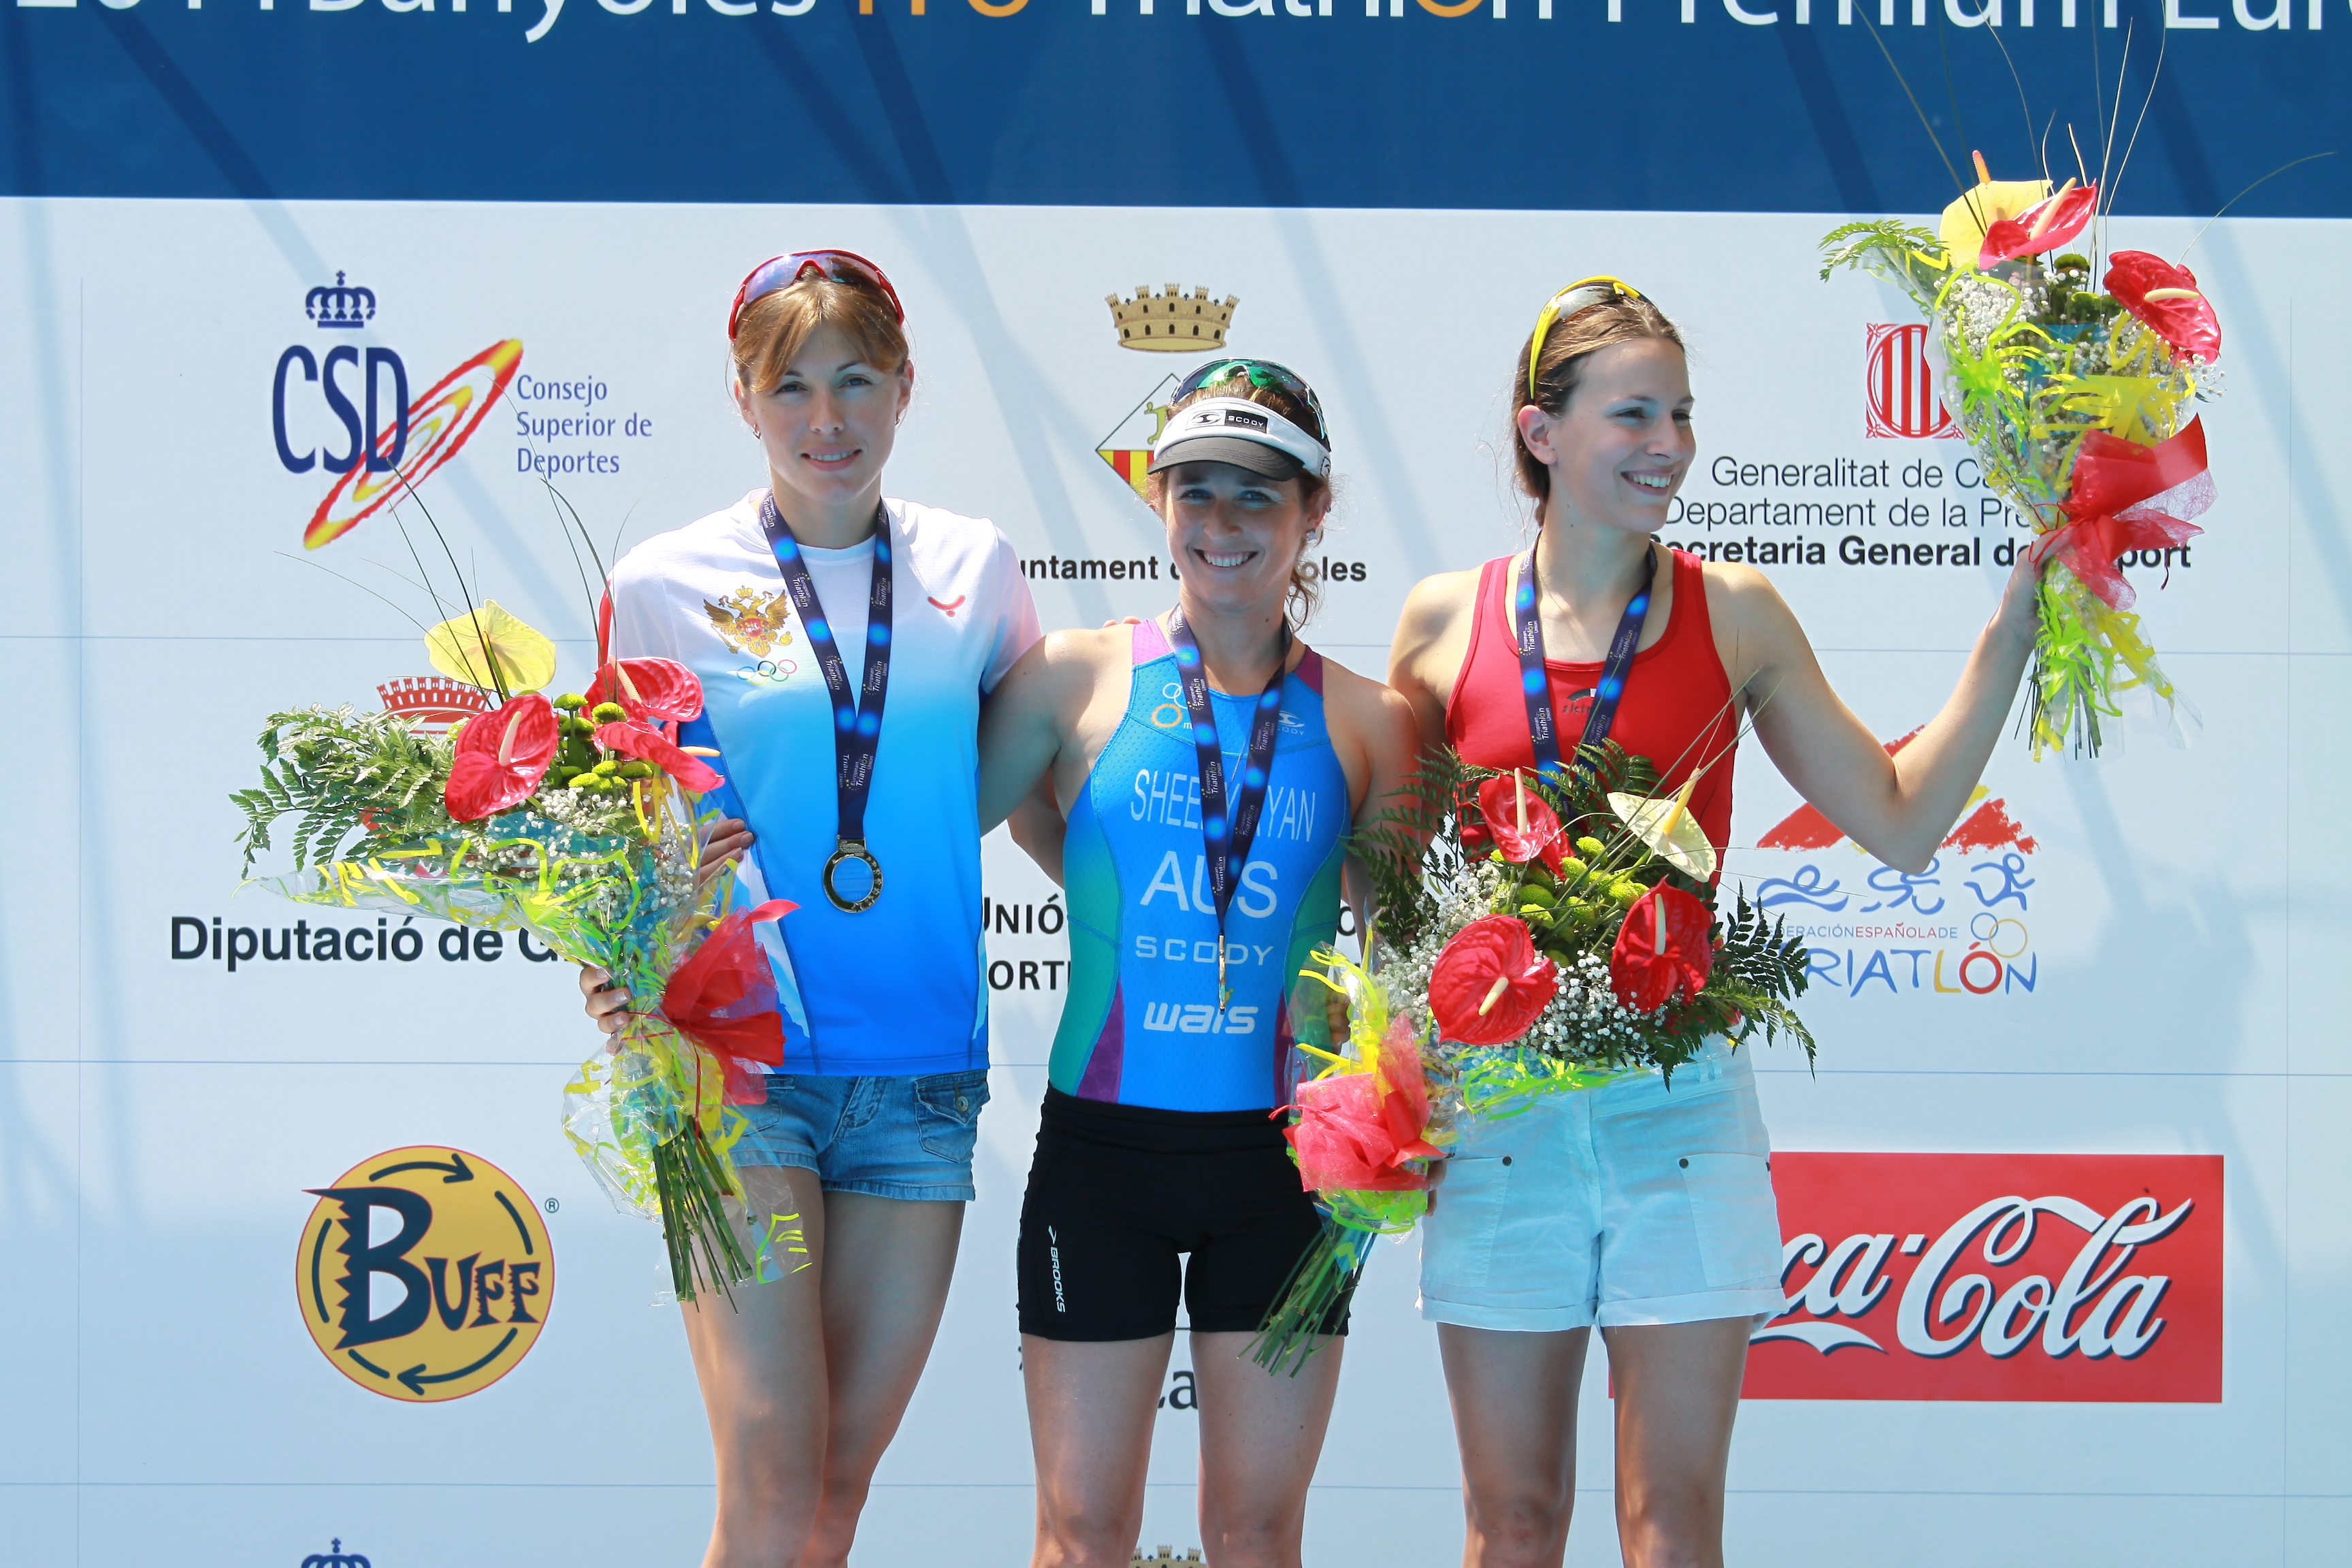 THE AUSTRALIAN SHEEDY-RYAN WINS THE WOMEN THRIATHLON EUROPEAN CUP IN FRONT OF ABYSOVA AND RADKA VODICKOVA